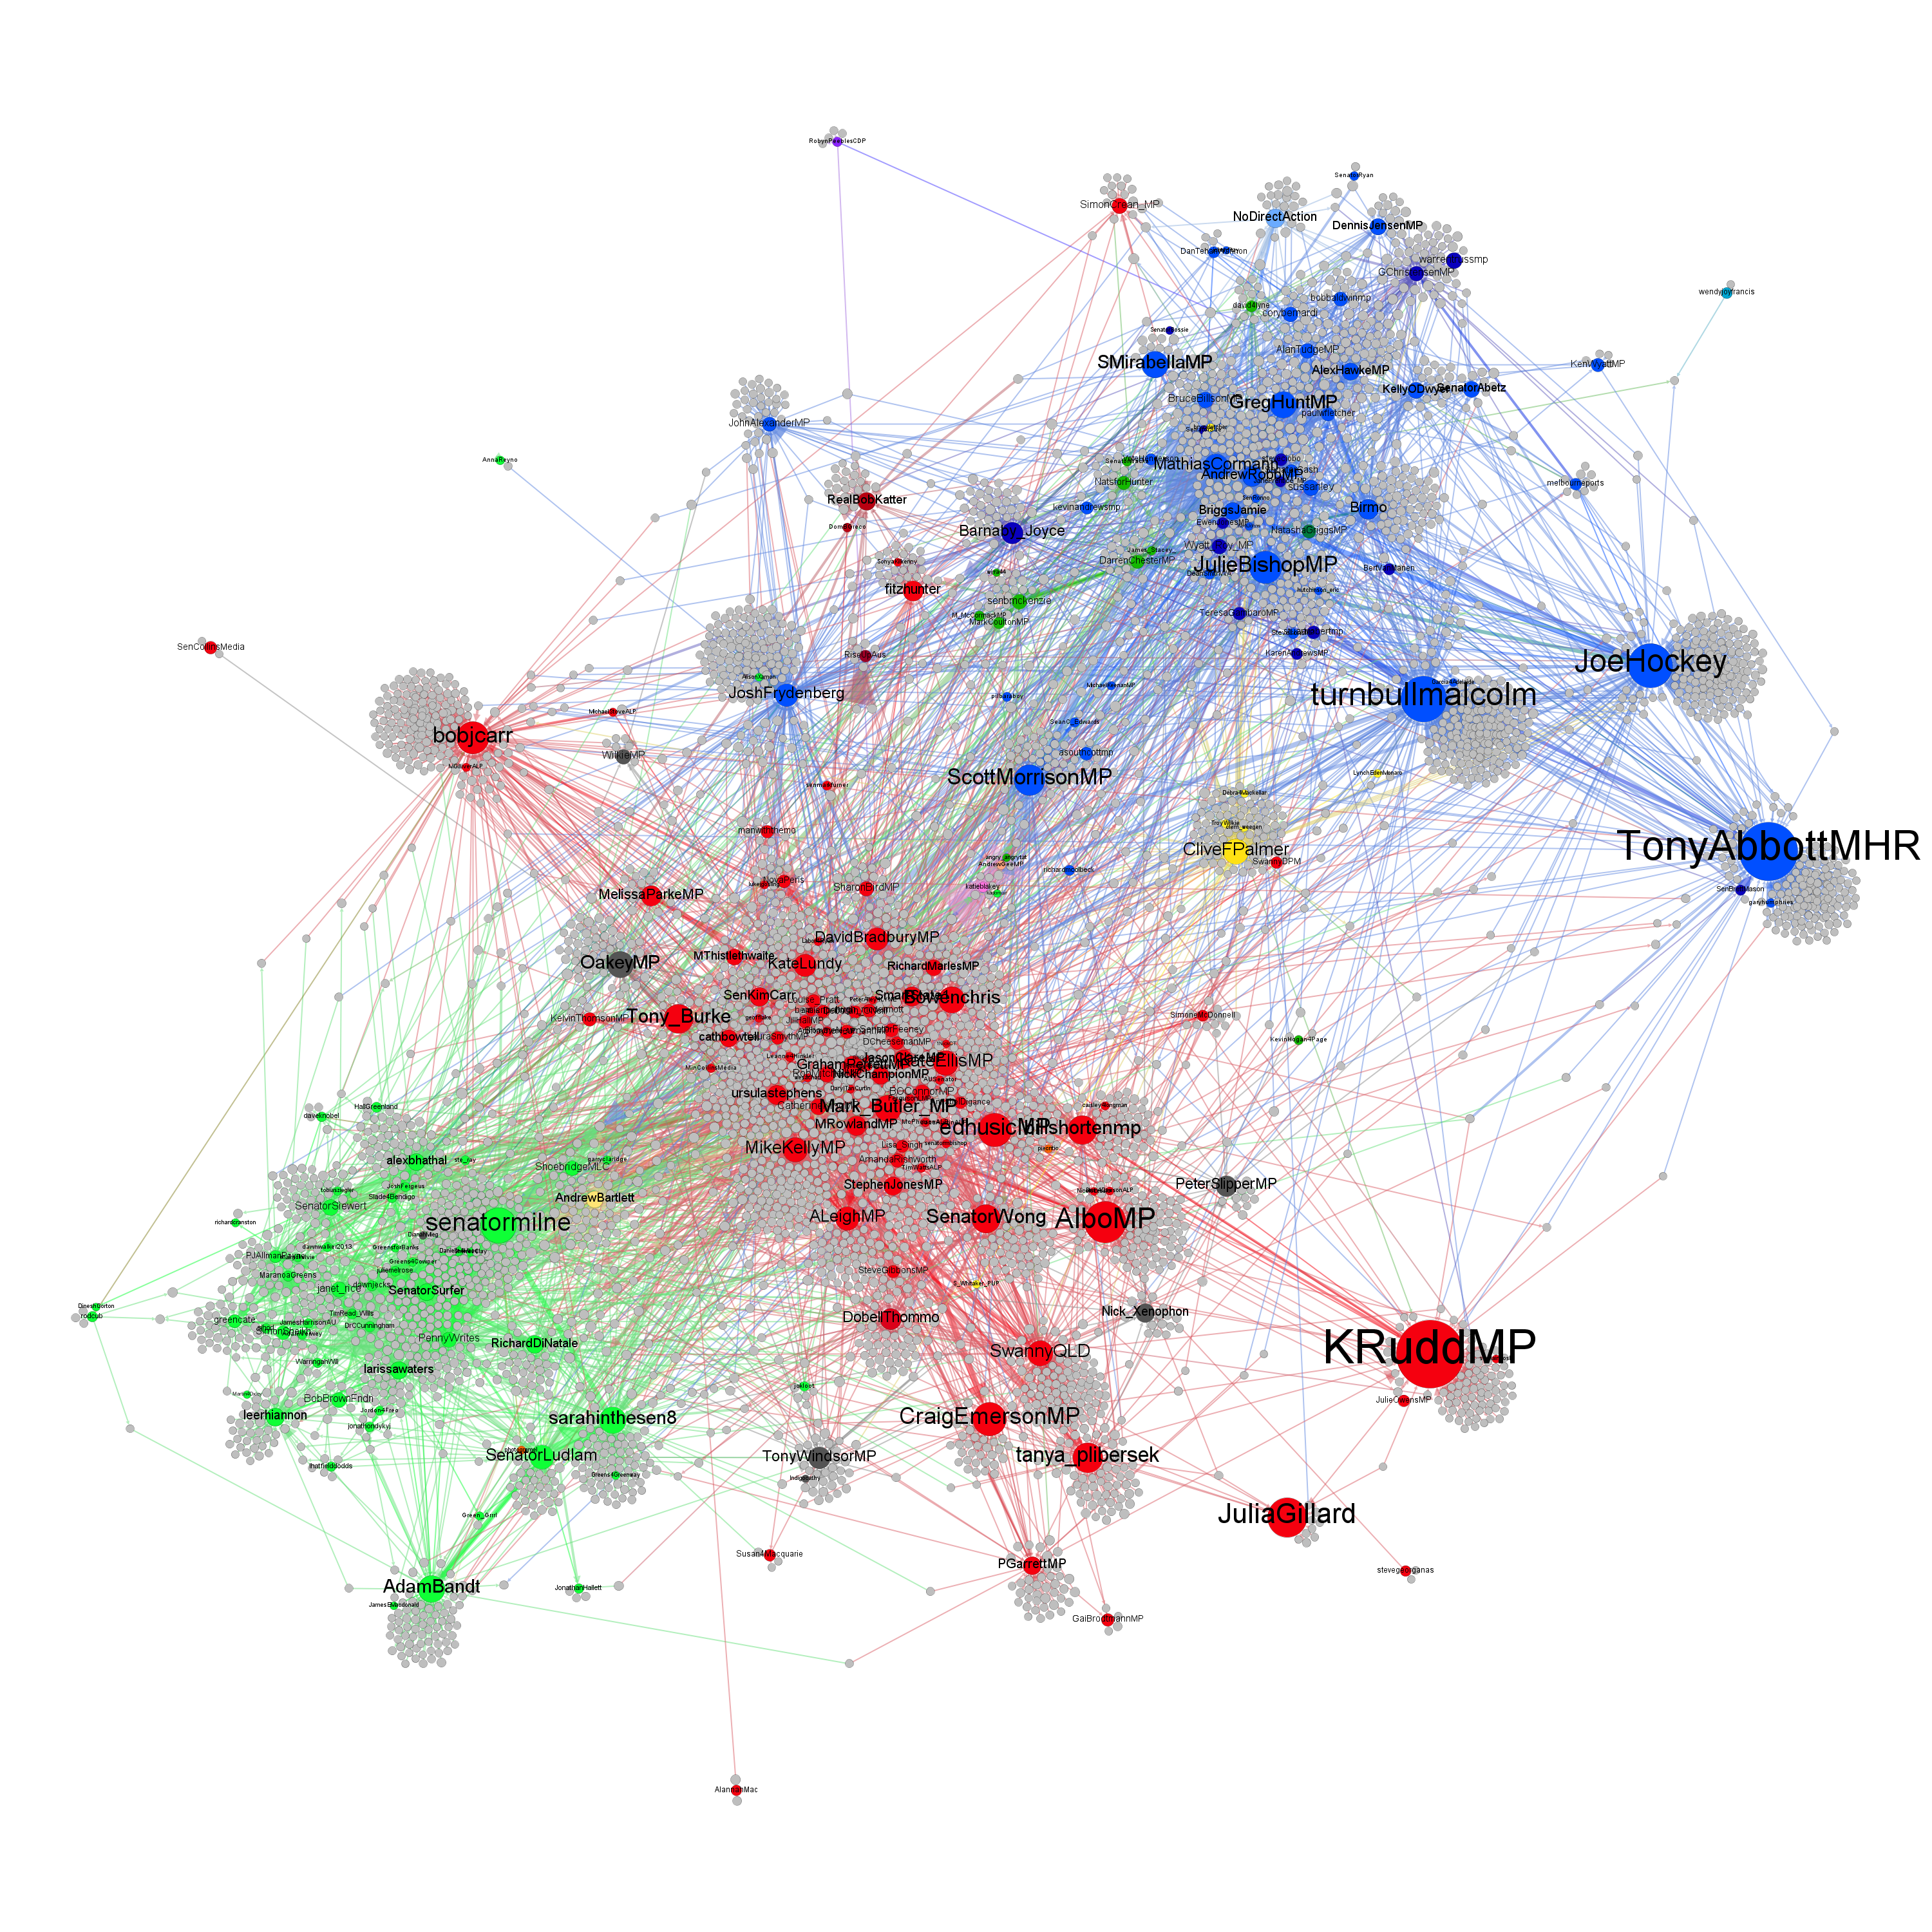 #ausvotes: Networks of Interaction on Twitter - Mapping ...